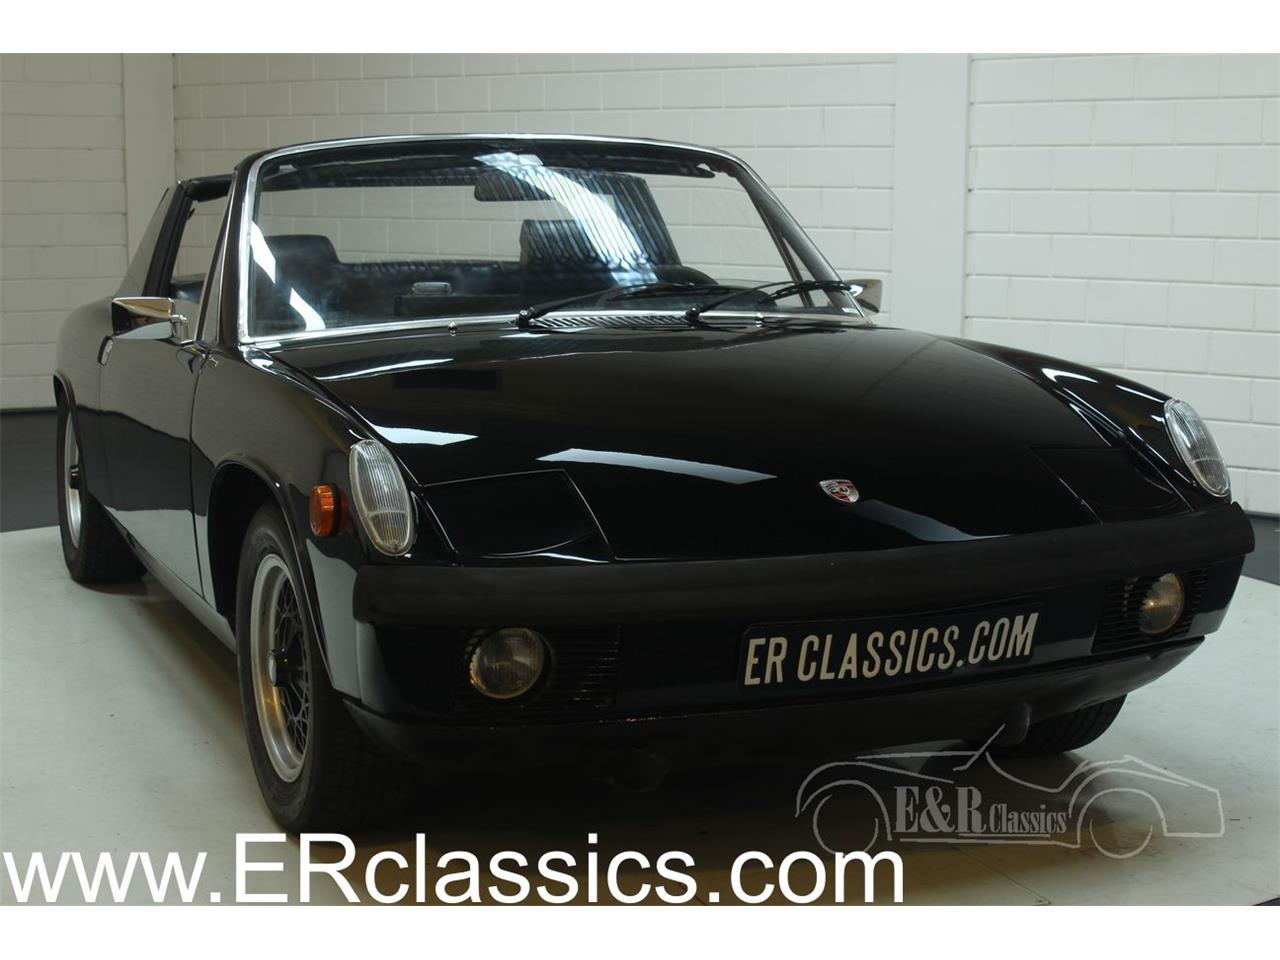 Large Picture of 1971 Porsche 914 located in Noord-Brabant - $20,450.00 Offered by E & R Classics - PB2R